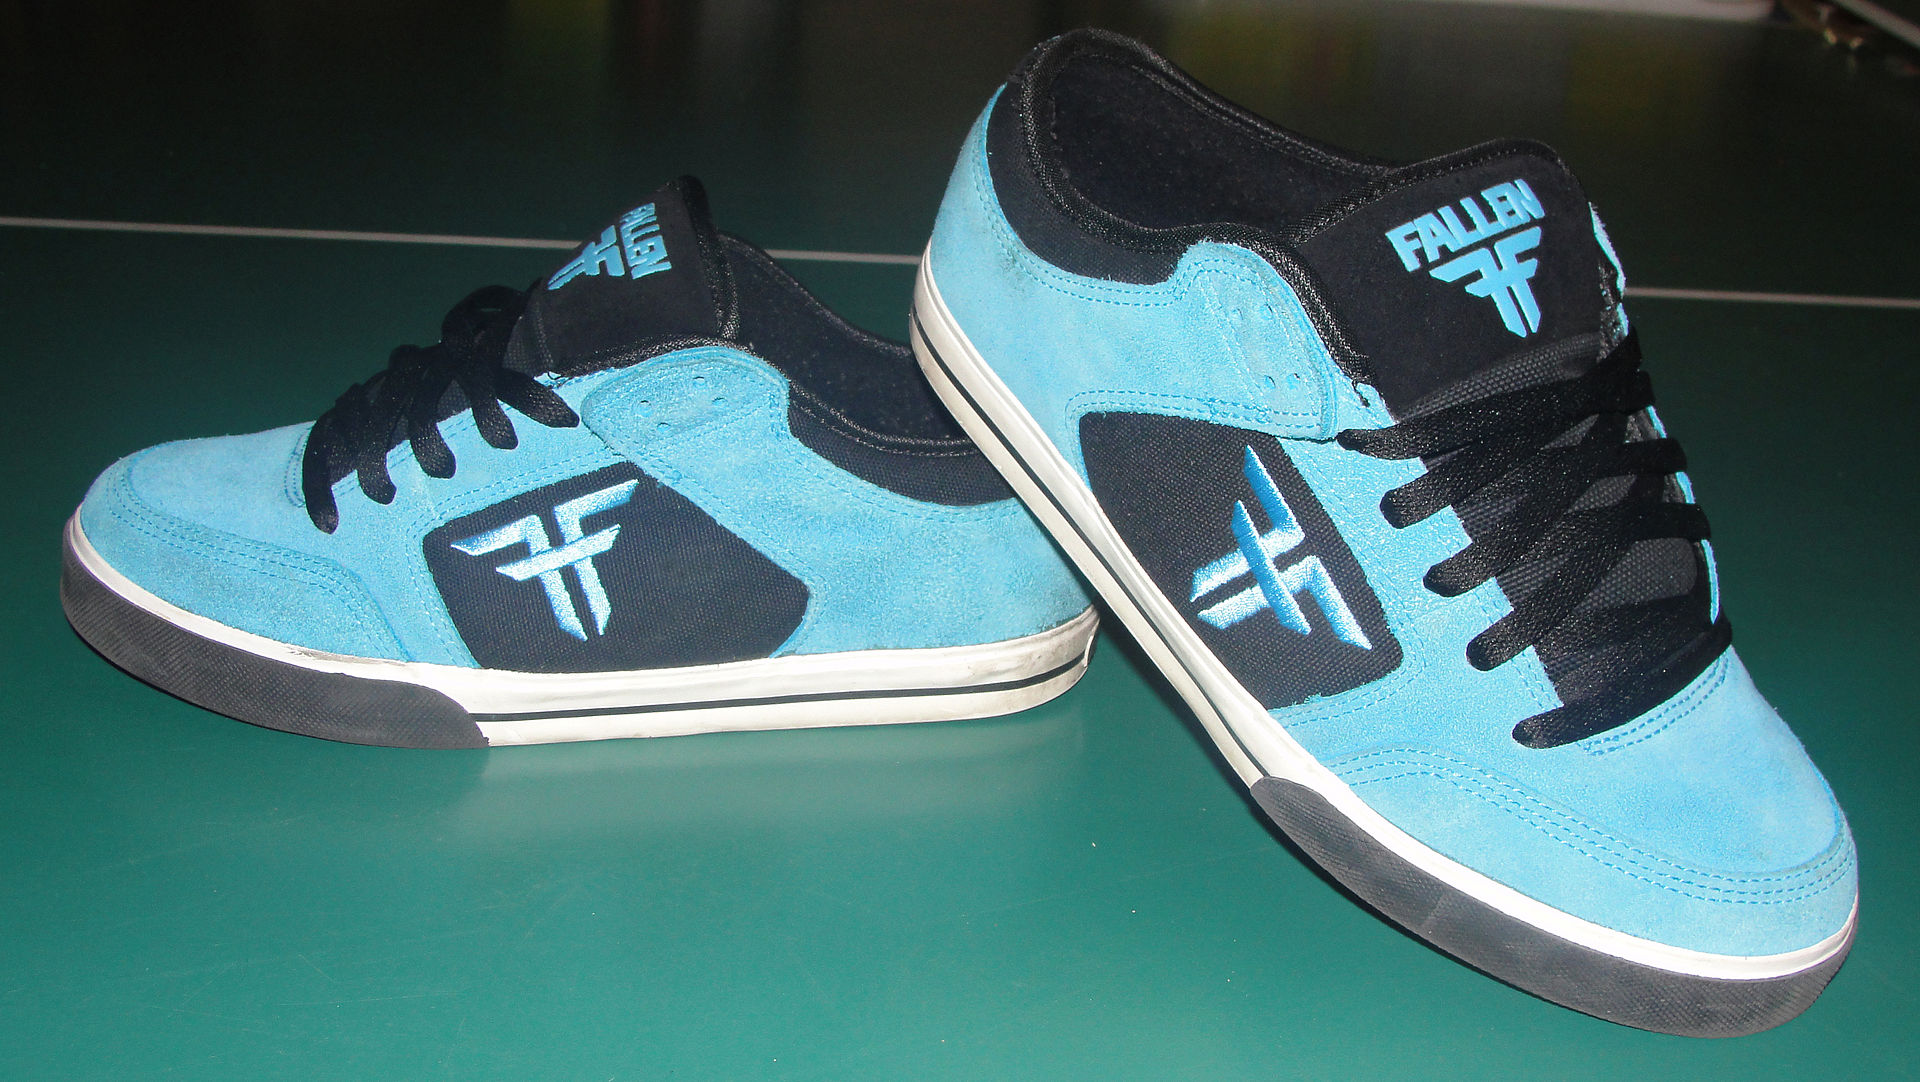 Skateboard Shoes For Wide Feet